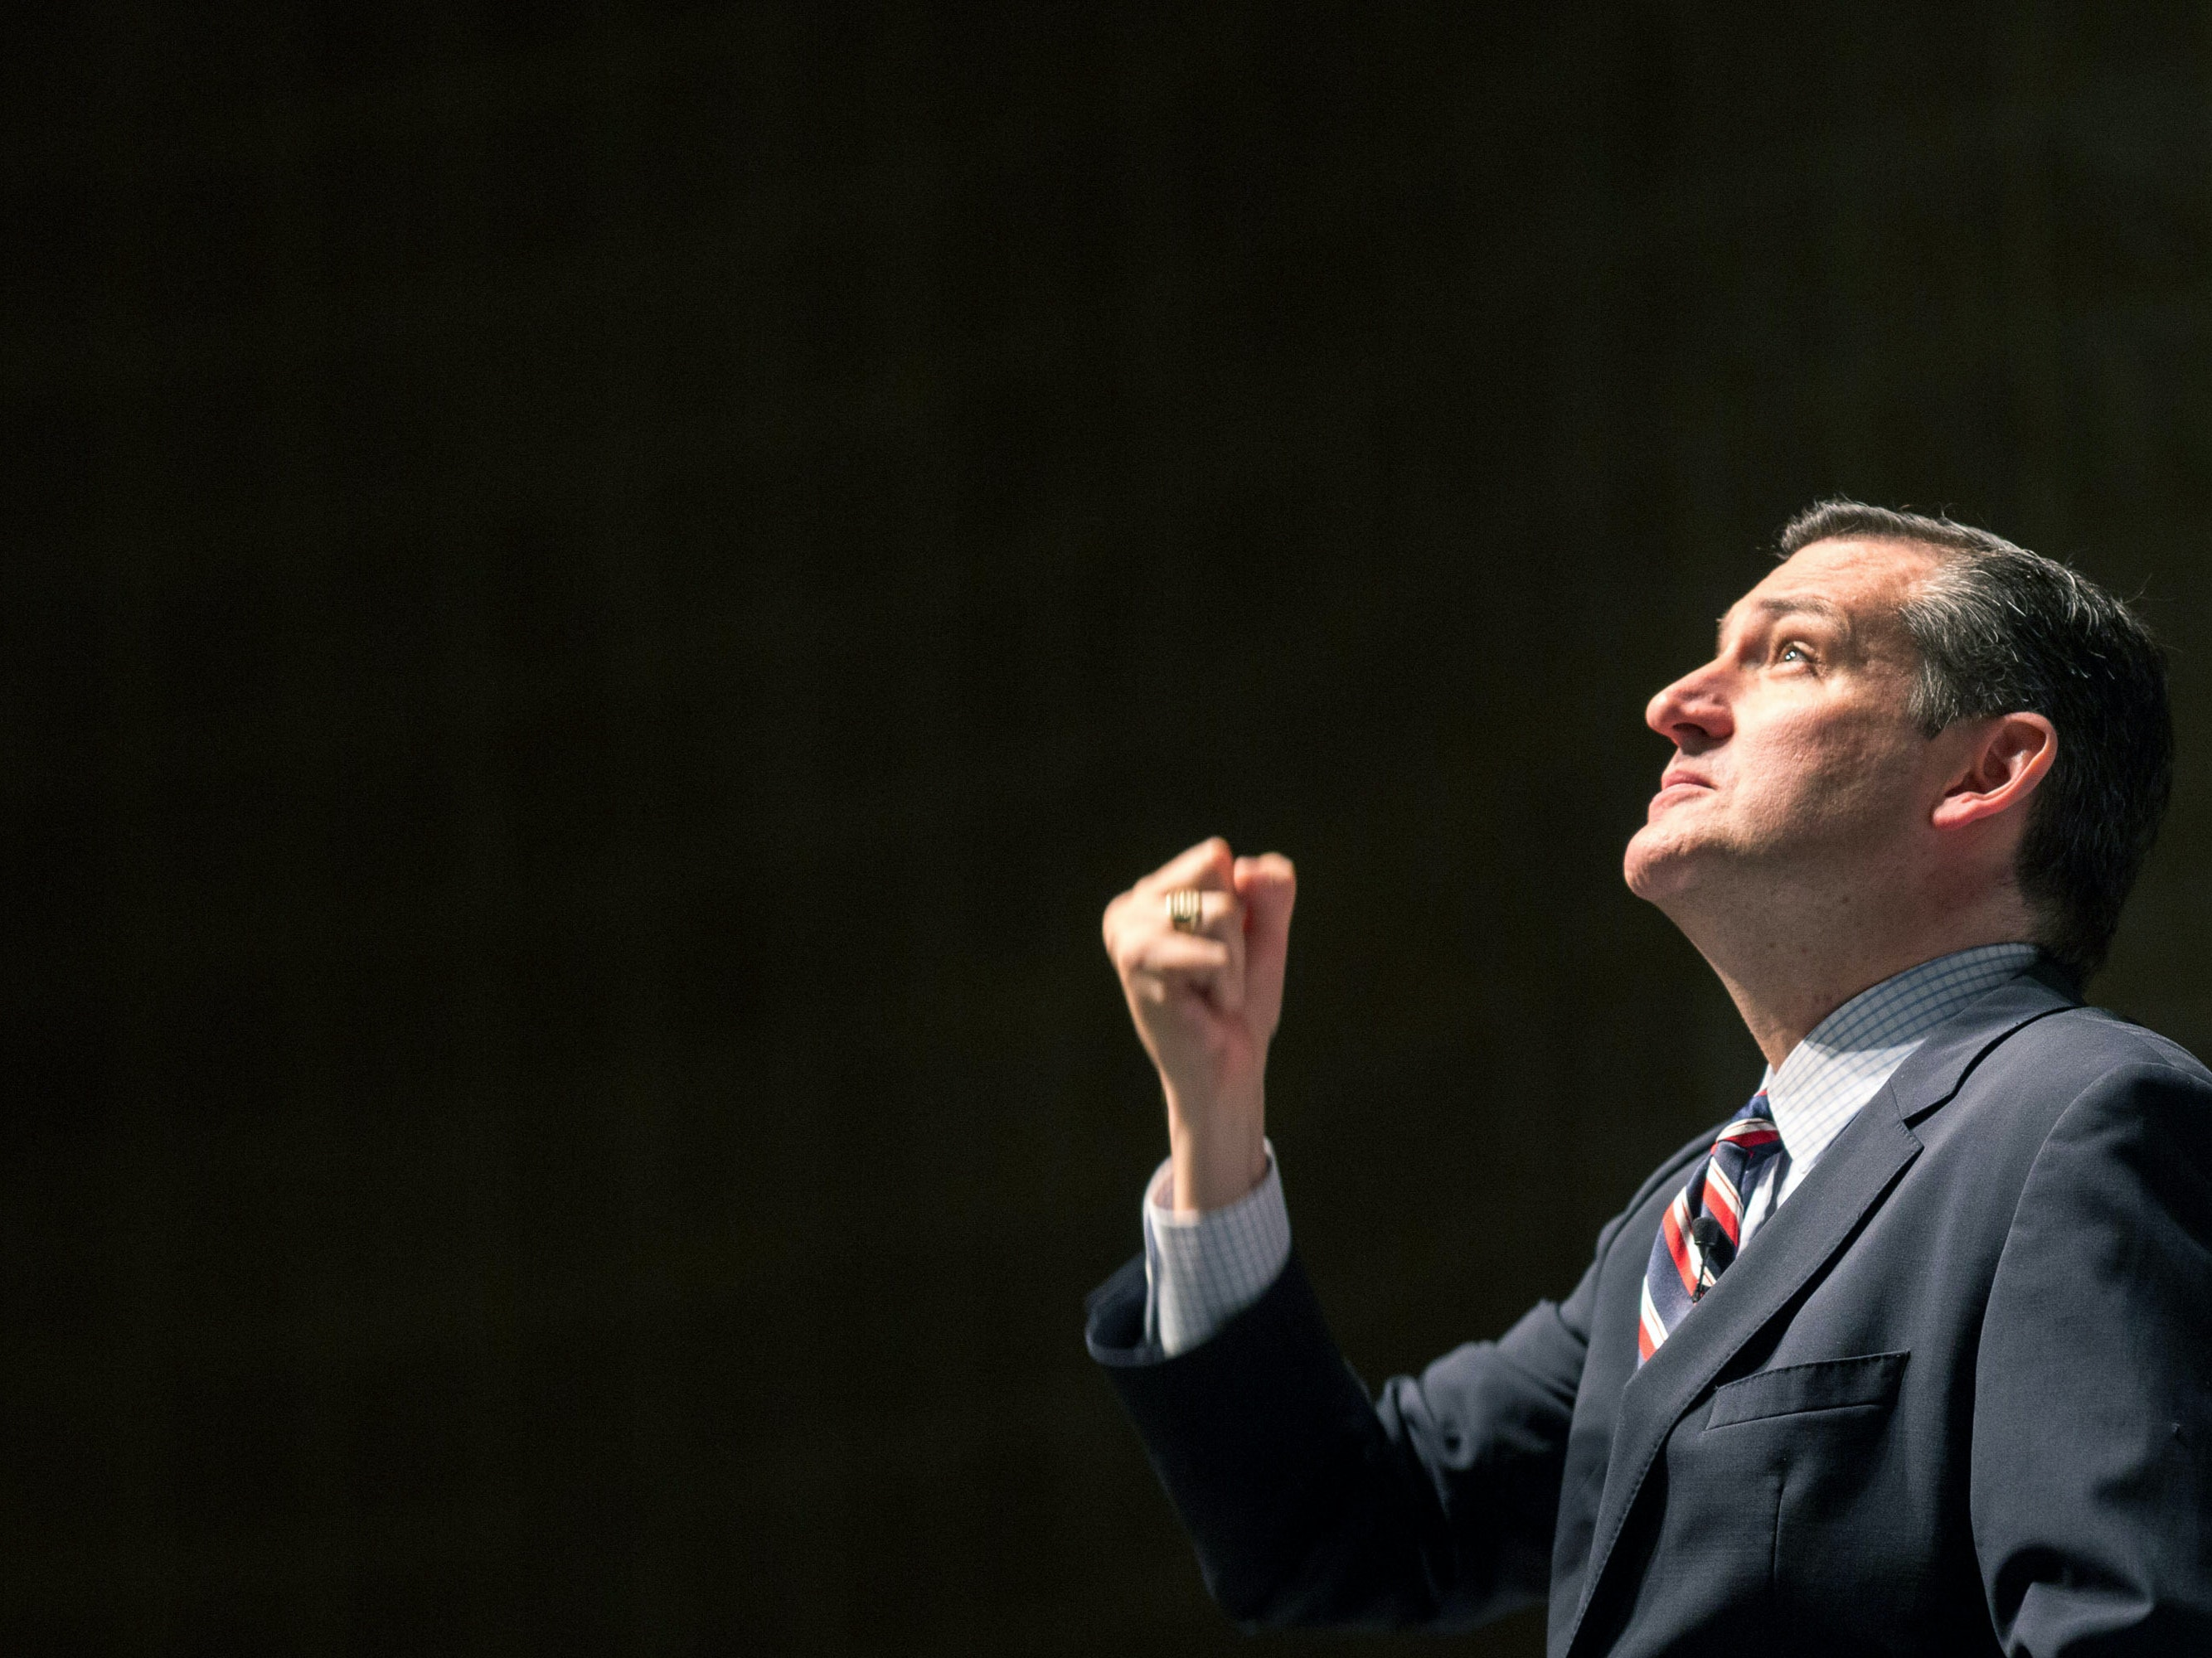 GREENVILLE, SC - MAY 09:  Republican presidential candidate U.S. Sen. Ted Cruz (R-TX) speaks during the Freedom Summit on May 9, 2015 in Greenville, South Carolina. Cruz joined eleven other potential candidates in addressing the event hosted by conservative group Citizens United.  (Photo by Richard Ellis/Getty Images)